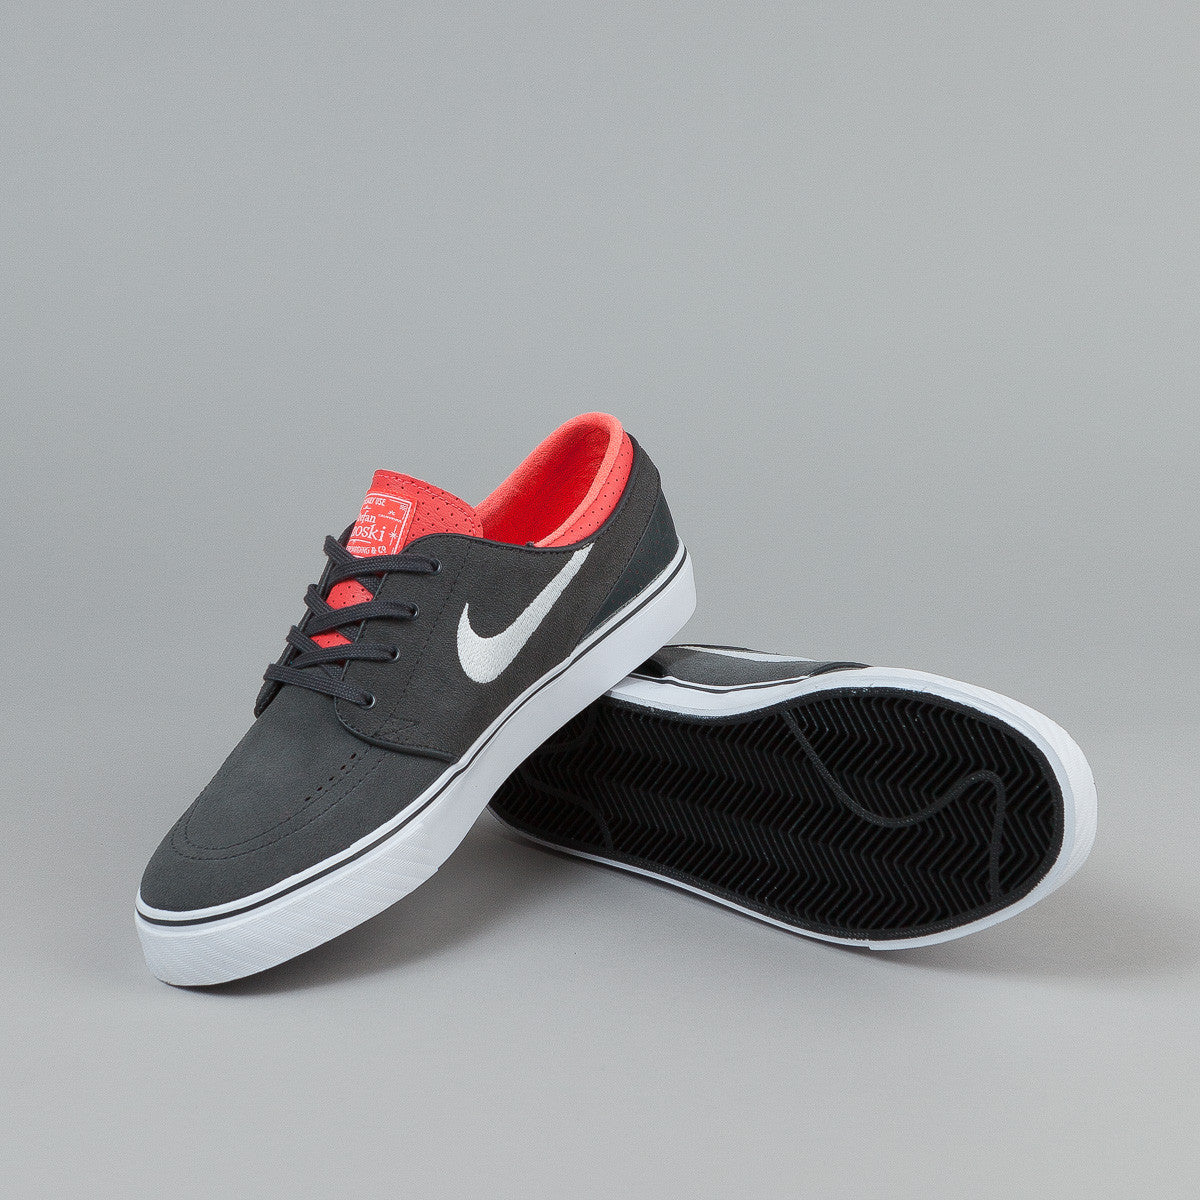 Nike SB Stefan Janoski Shoes - Anthracite / White  - Laser Crimson - Black